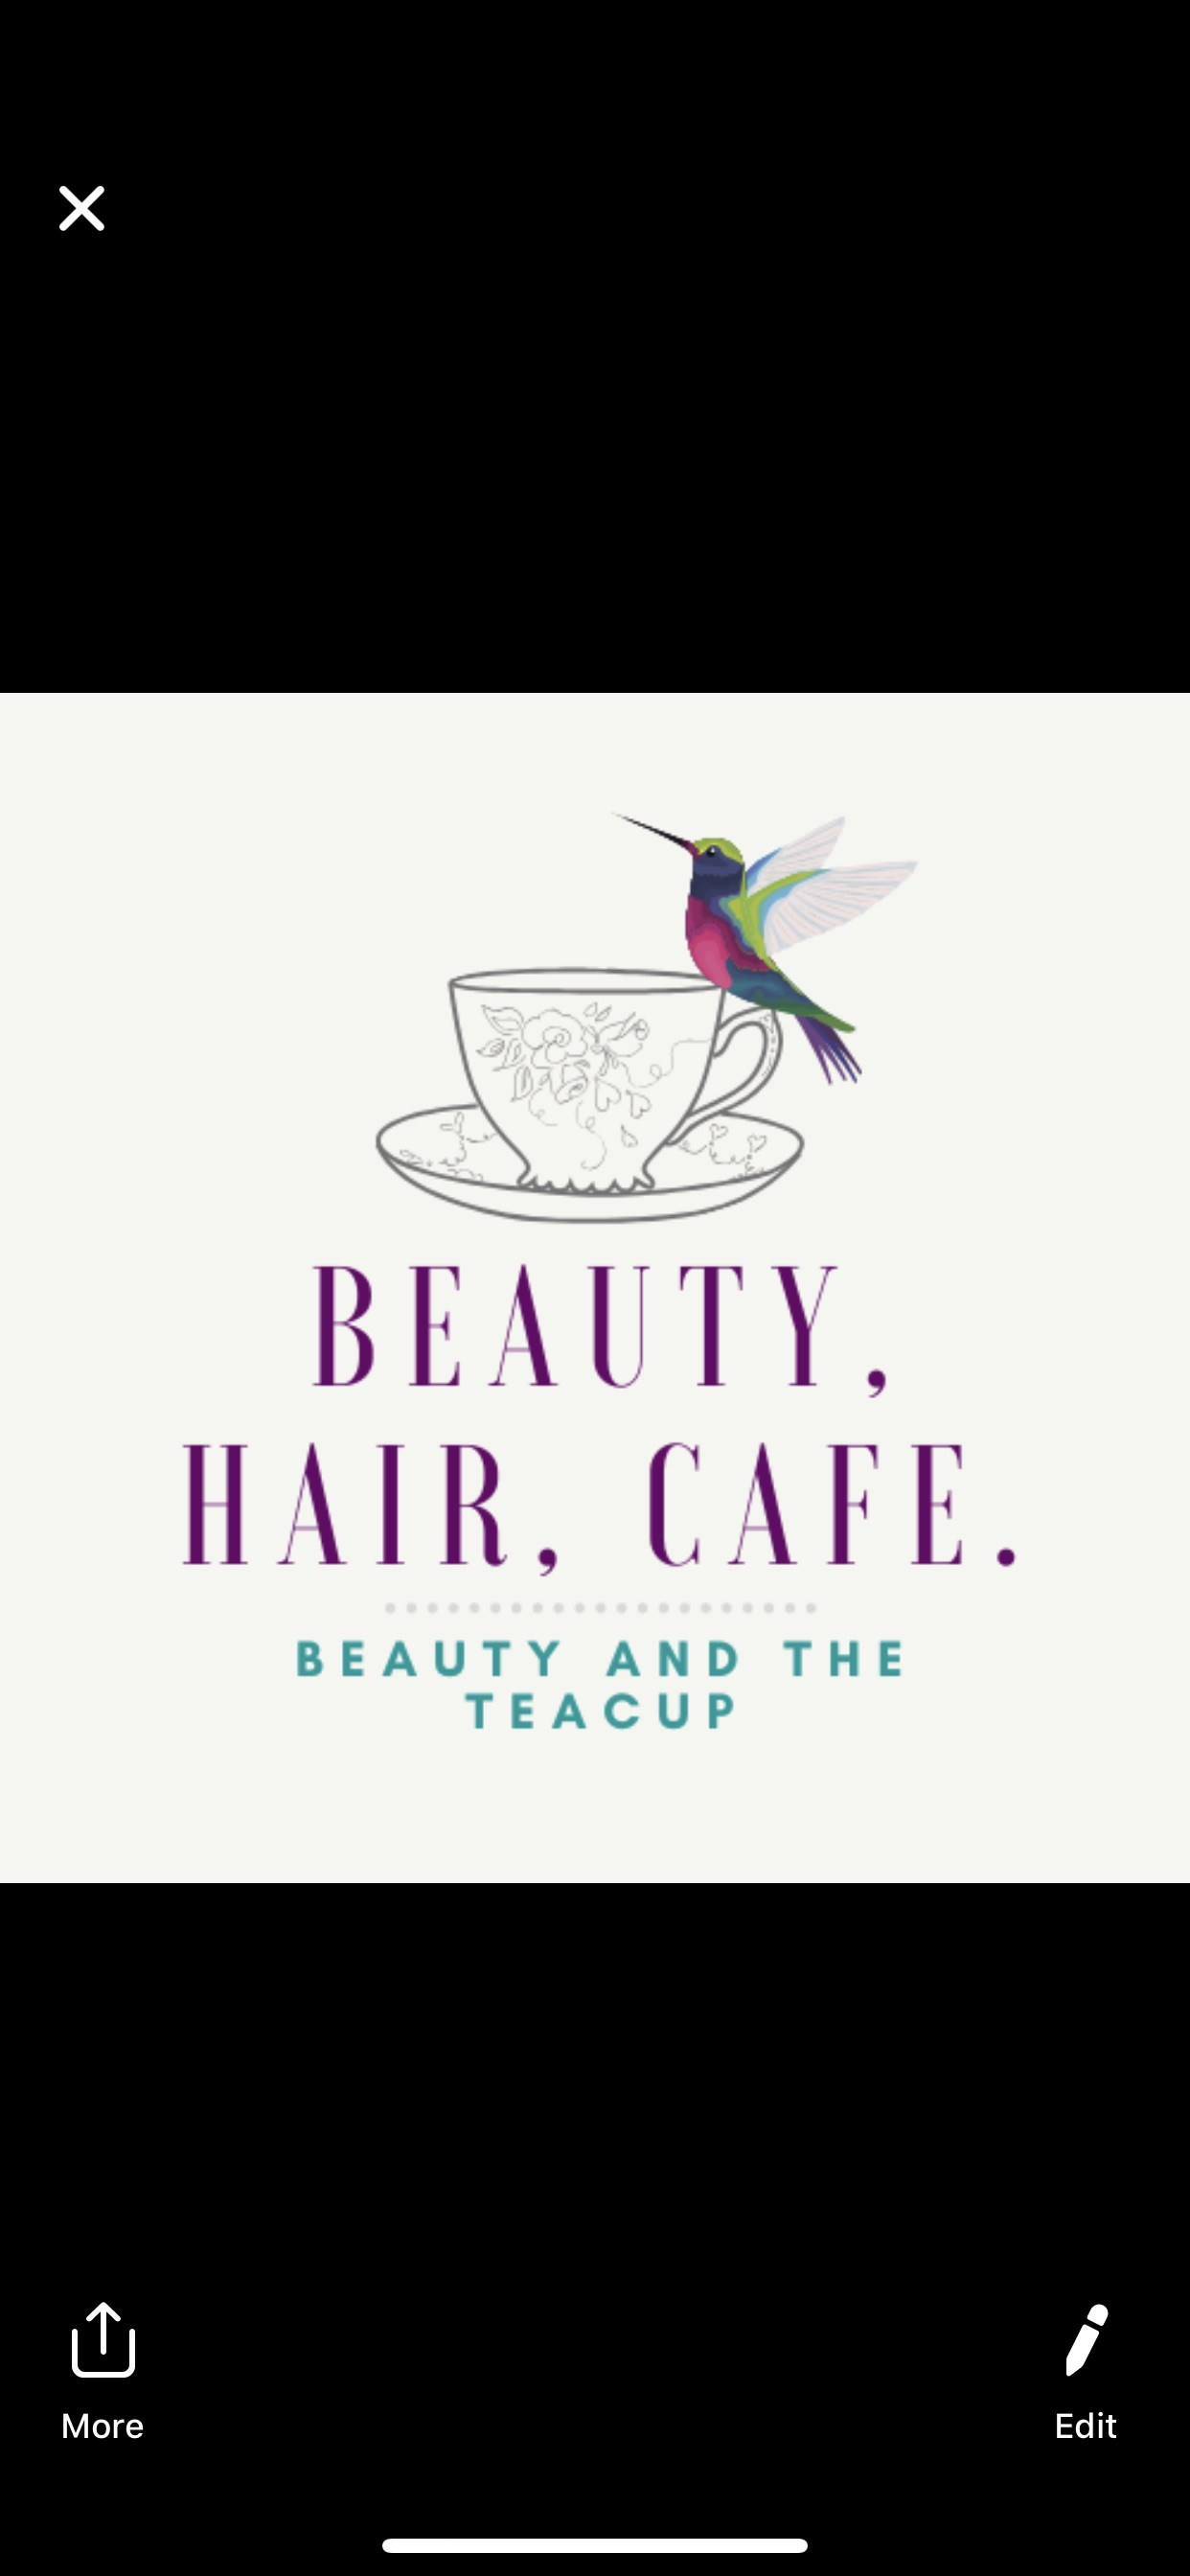 Beauty and the Teacup